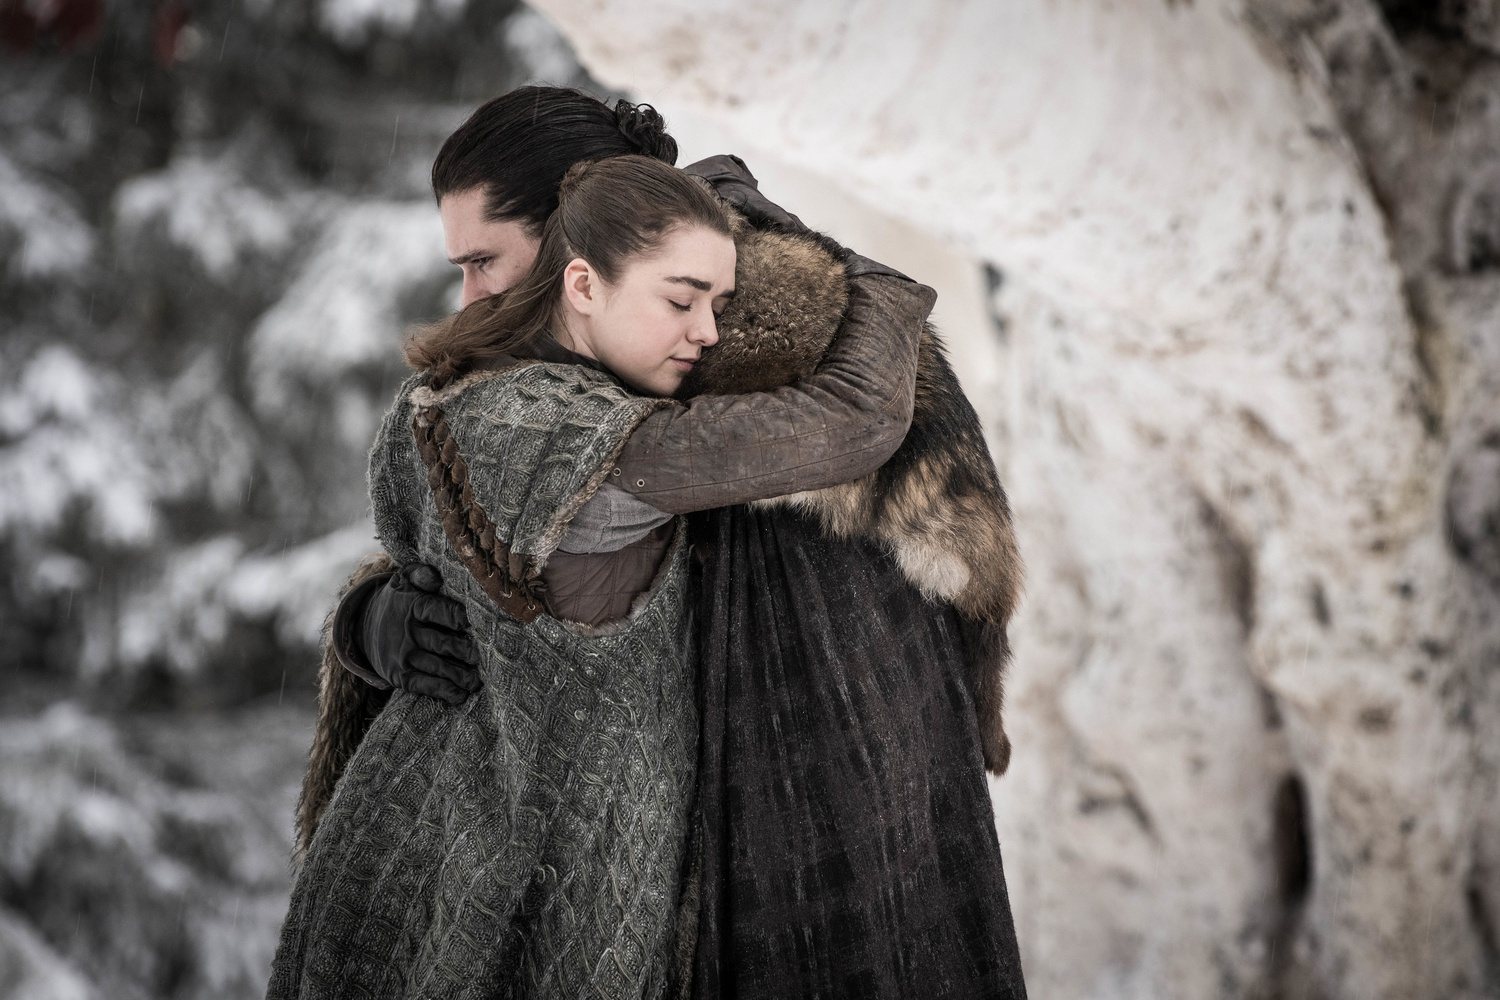 Maisie Williams and Kit Harington in the debut of Season 8.